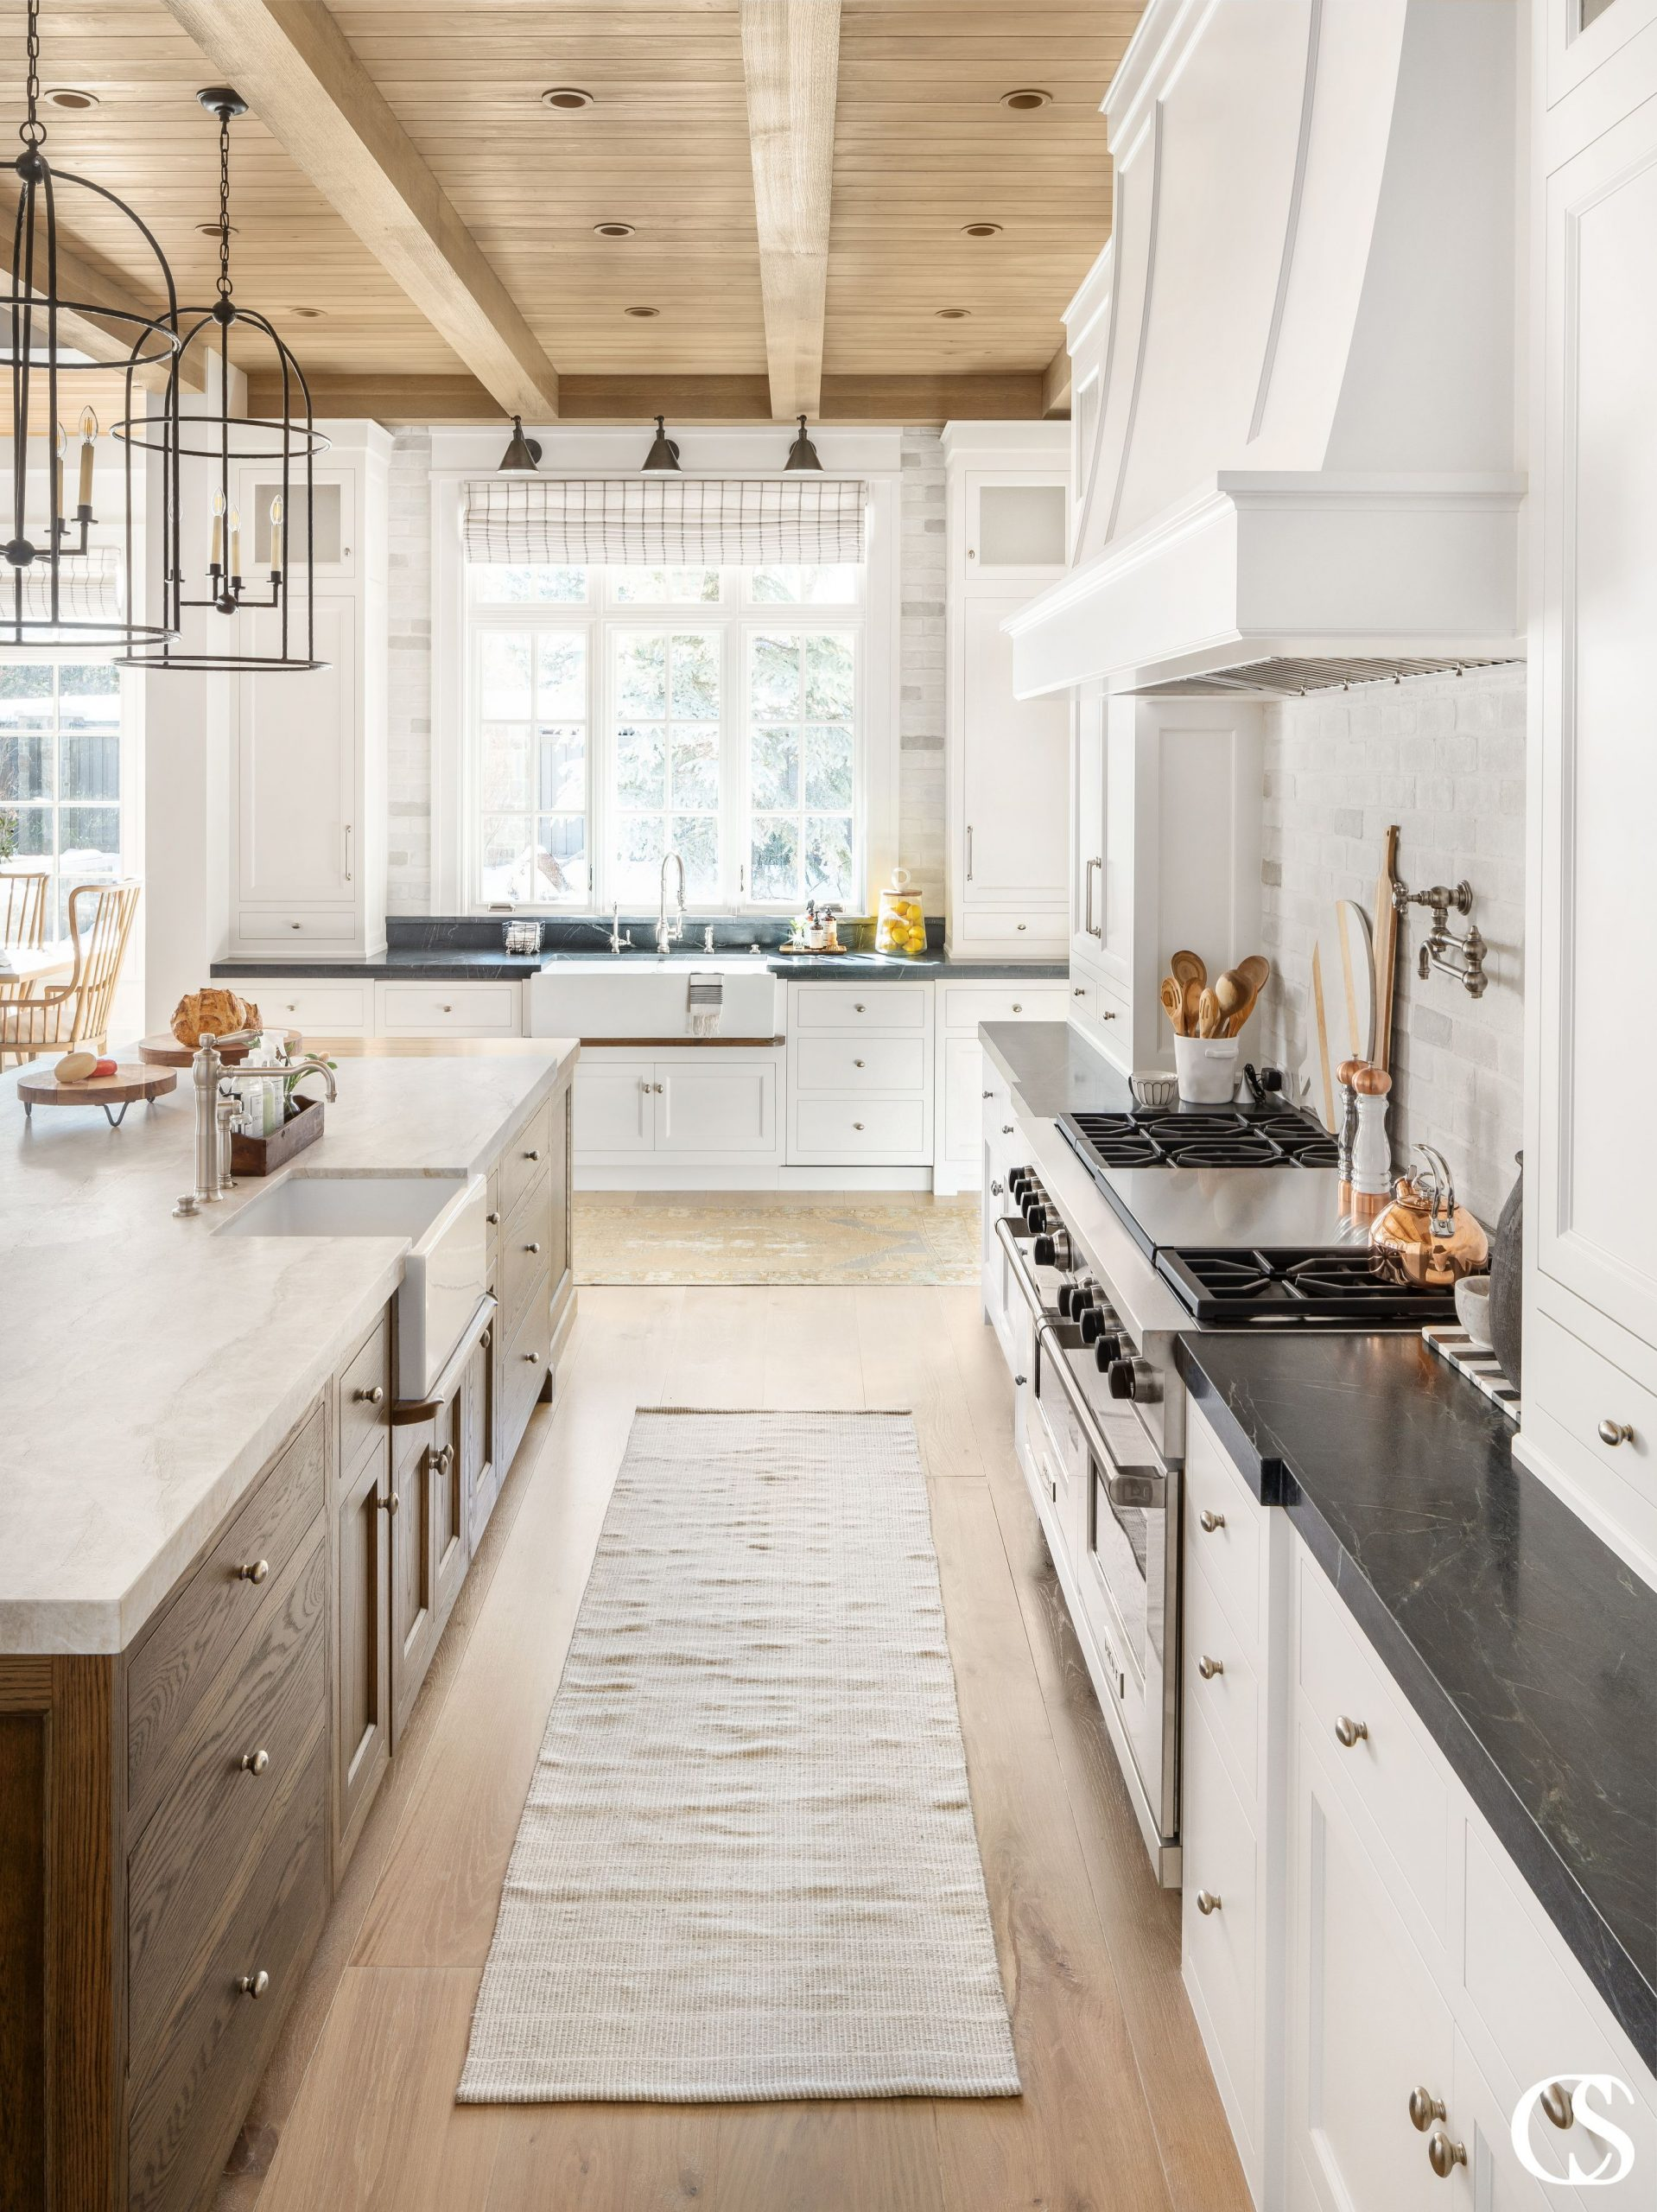 The natural woods in this white custom kitchen brings a certain homey balance to the space. It's cozy yet bright and clean.